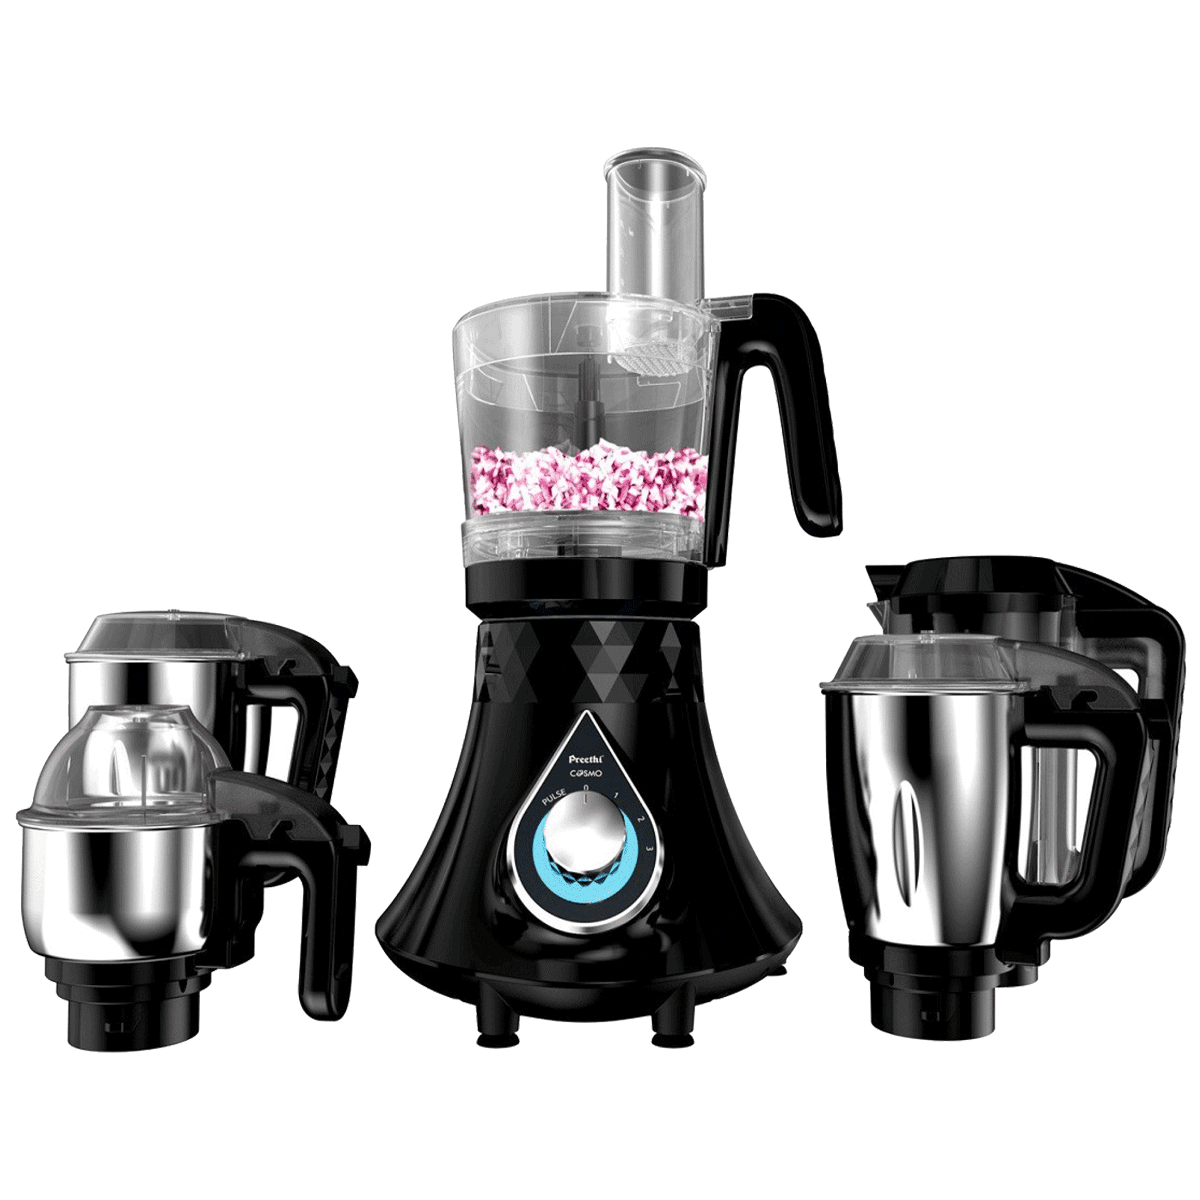 Preethi Zodiac Cosmo 750 Watts 5 Jars Juicer Mixer Grinder (Secure Lock System, MG236, Black)